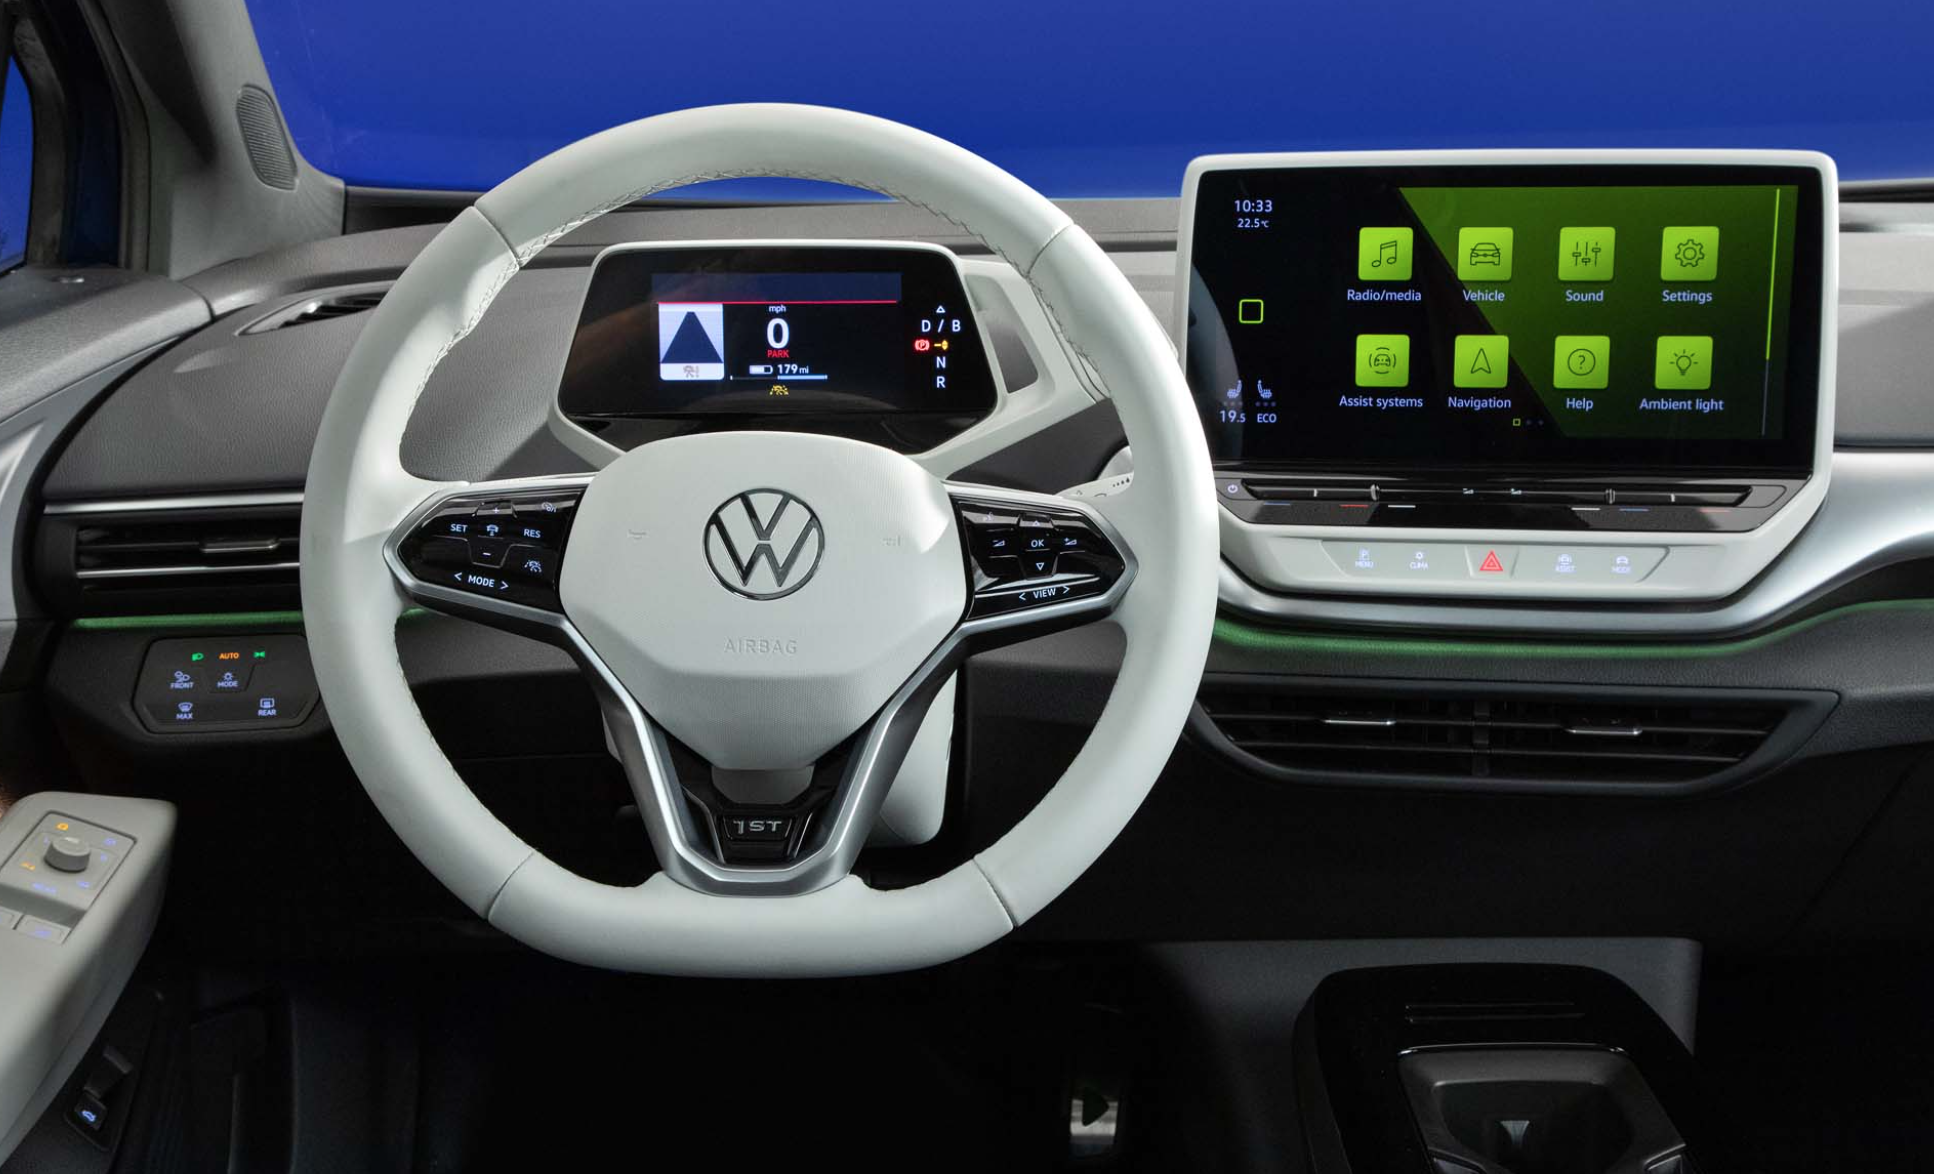 Various touch surfaces within the car such as the infotainment system and gauge cluster